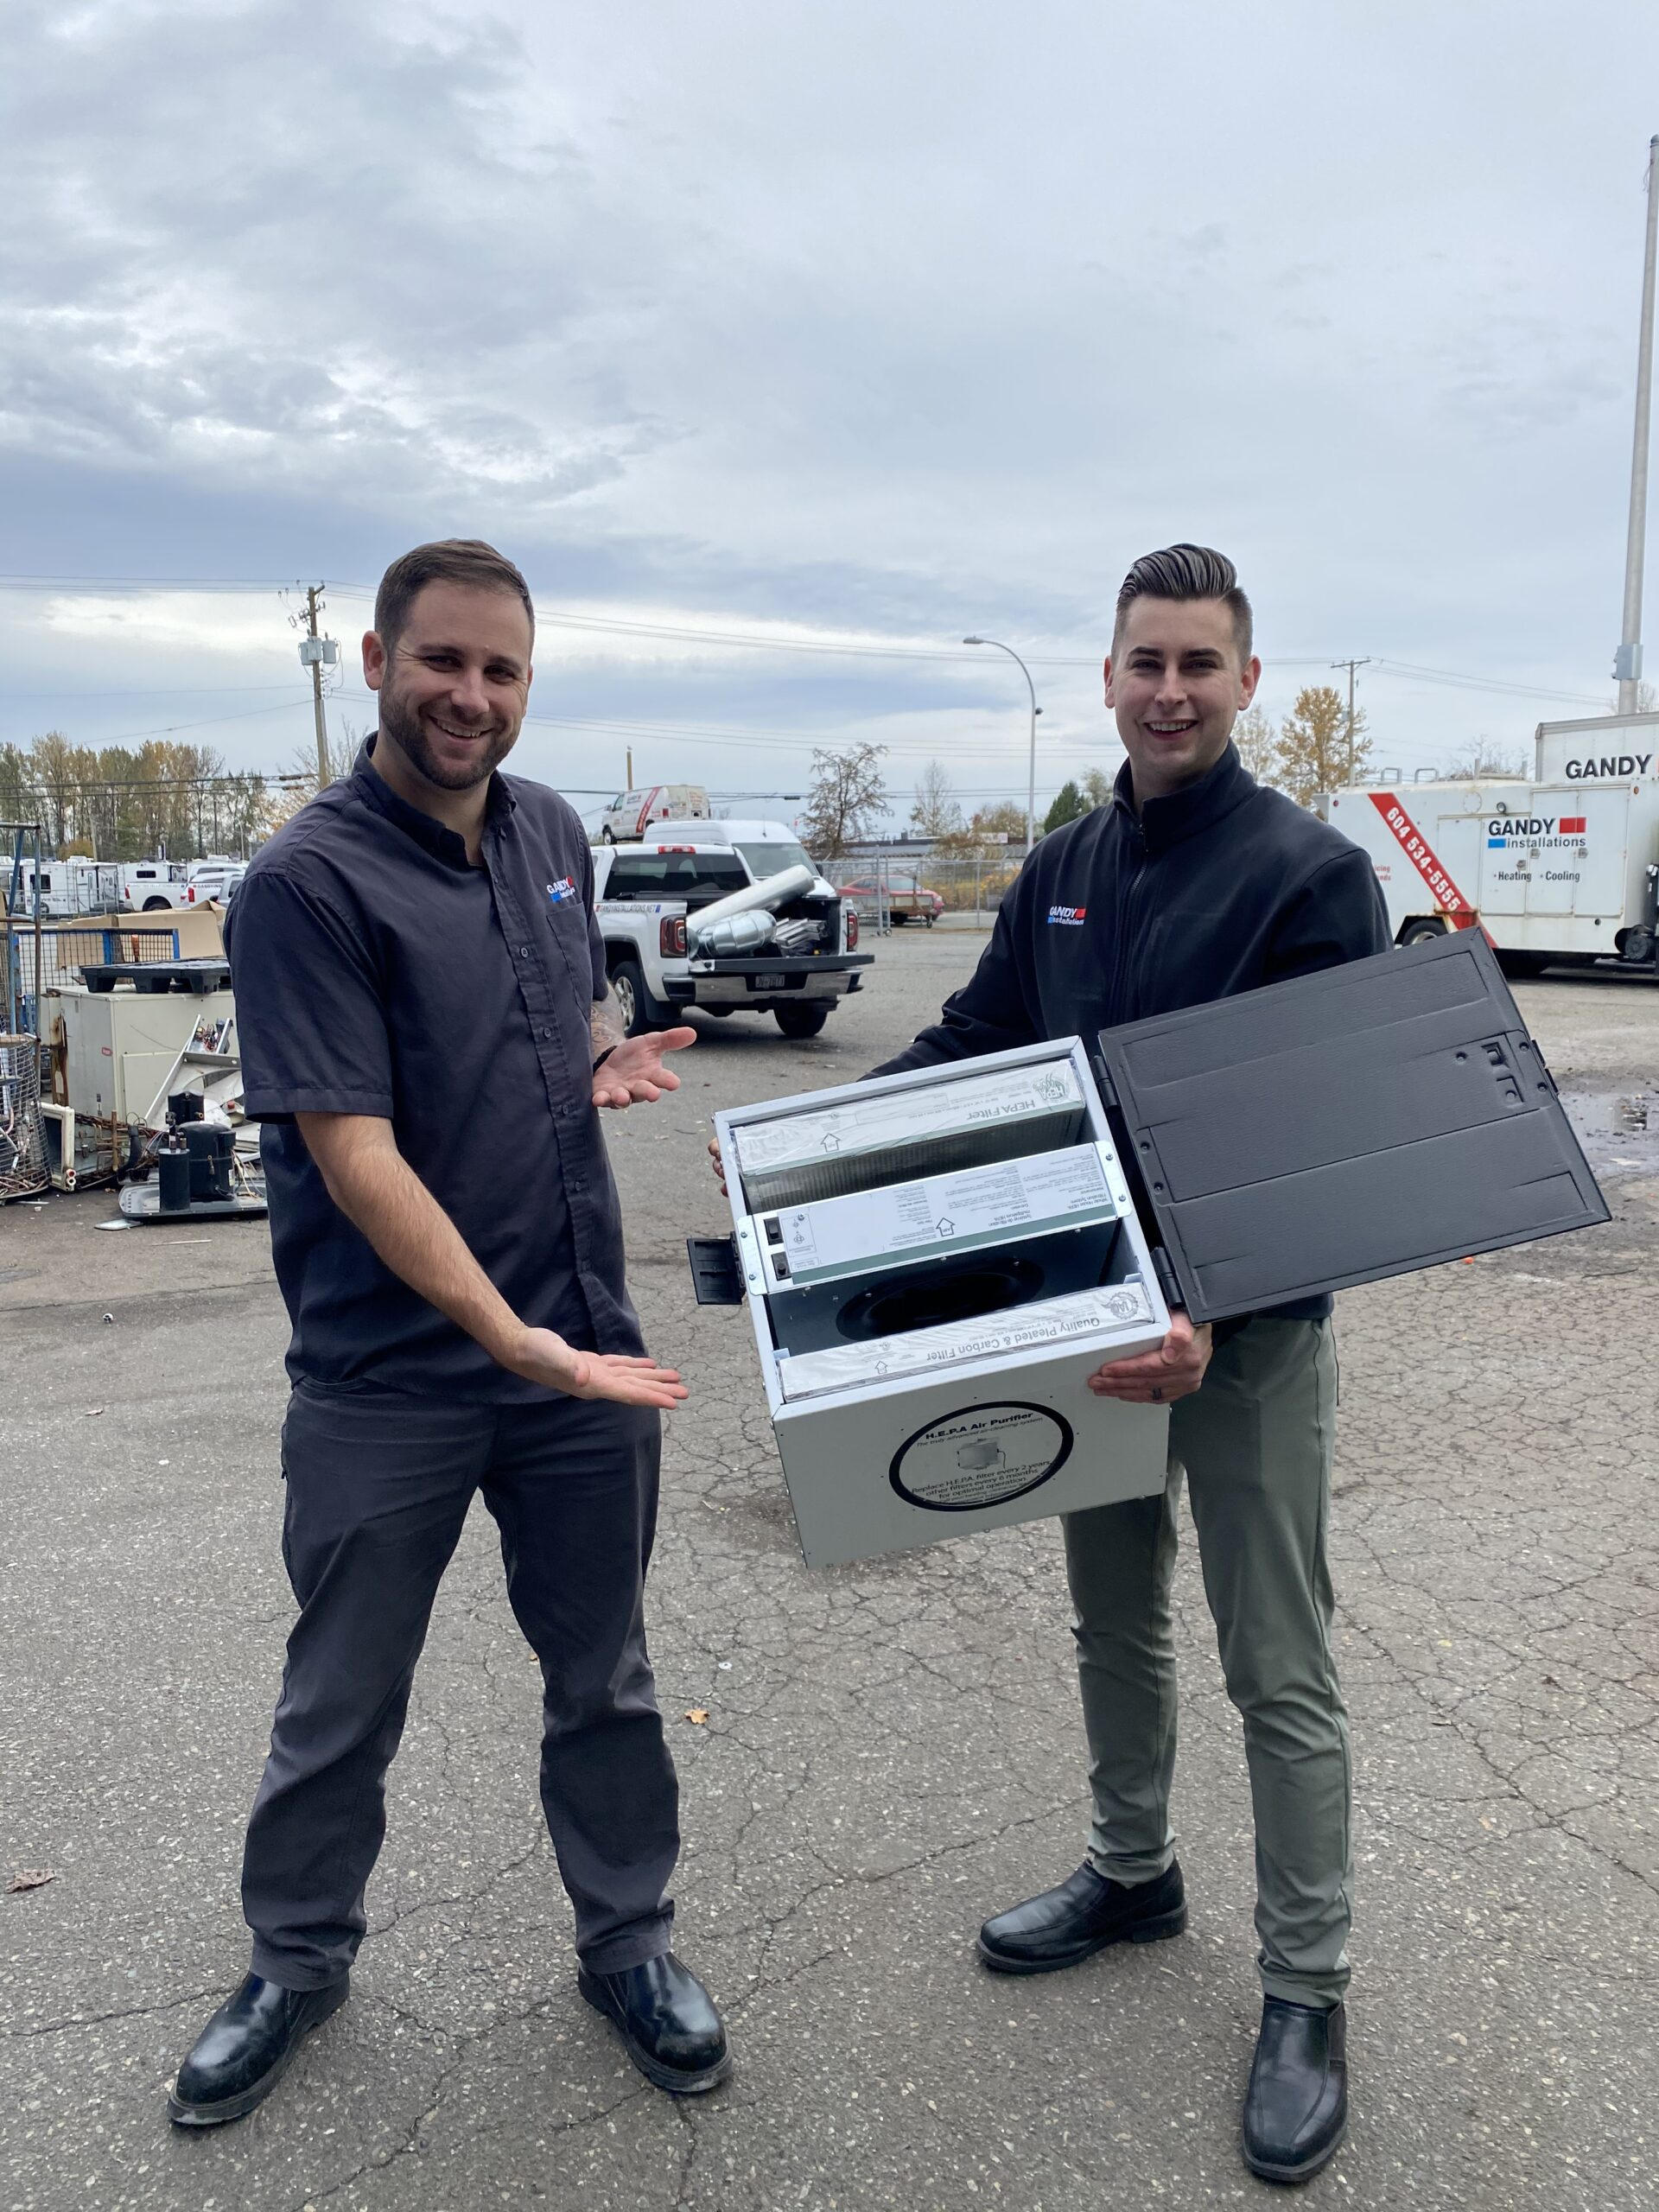 Gandy HVAC Vancouver with some miscellaneous equipment